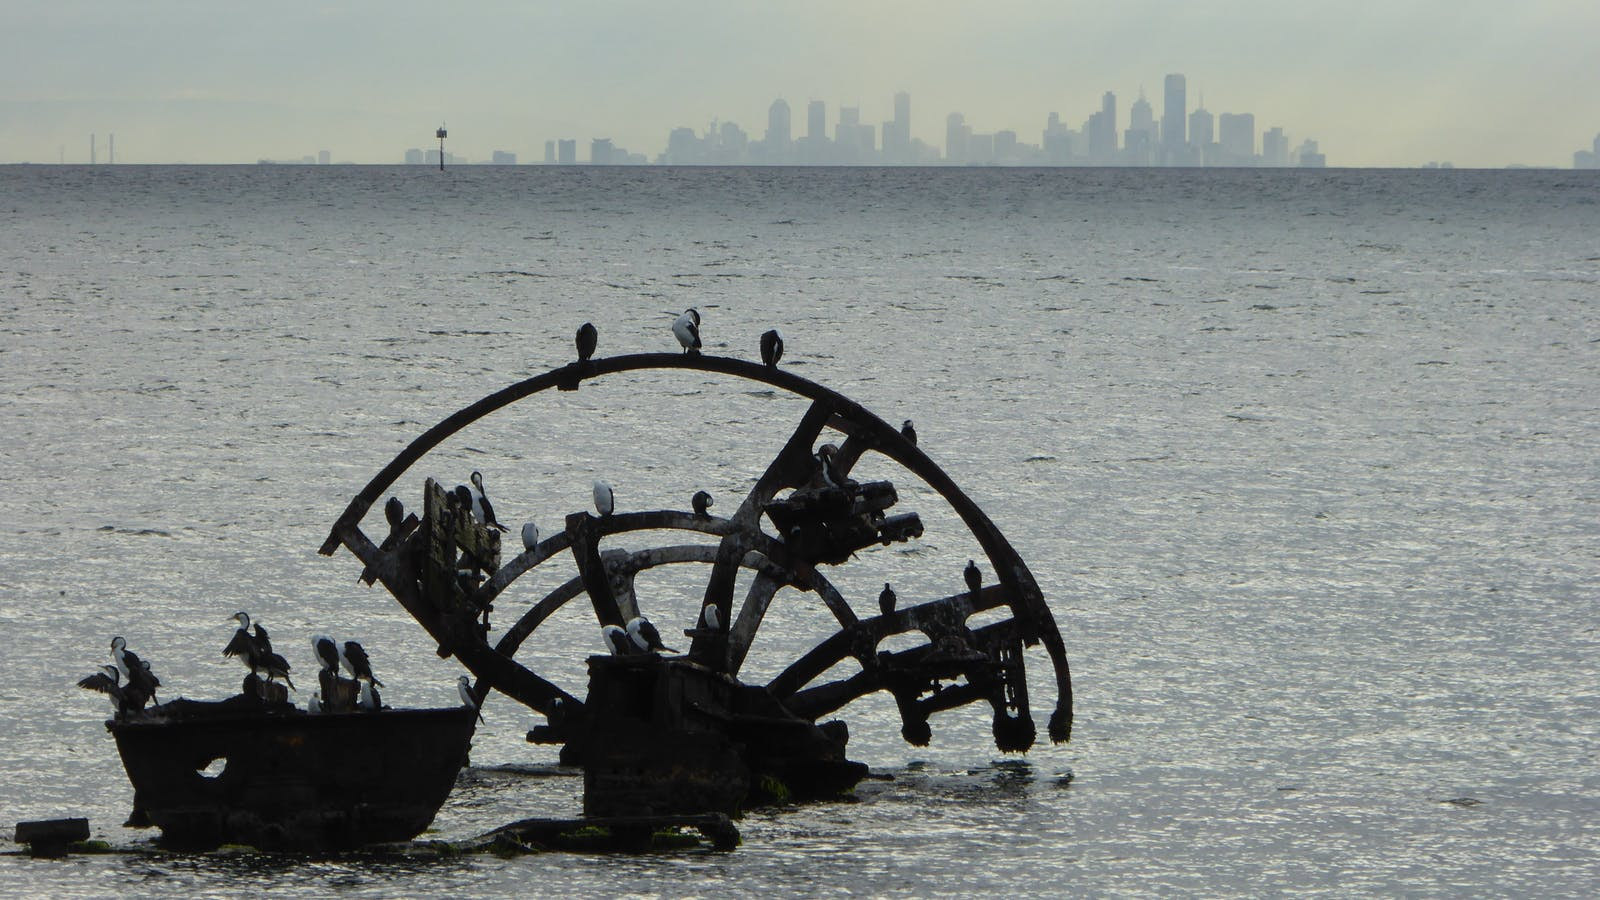 Ozone wreck and Melbourne skyline